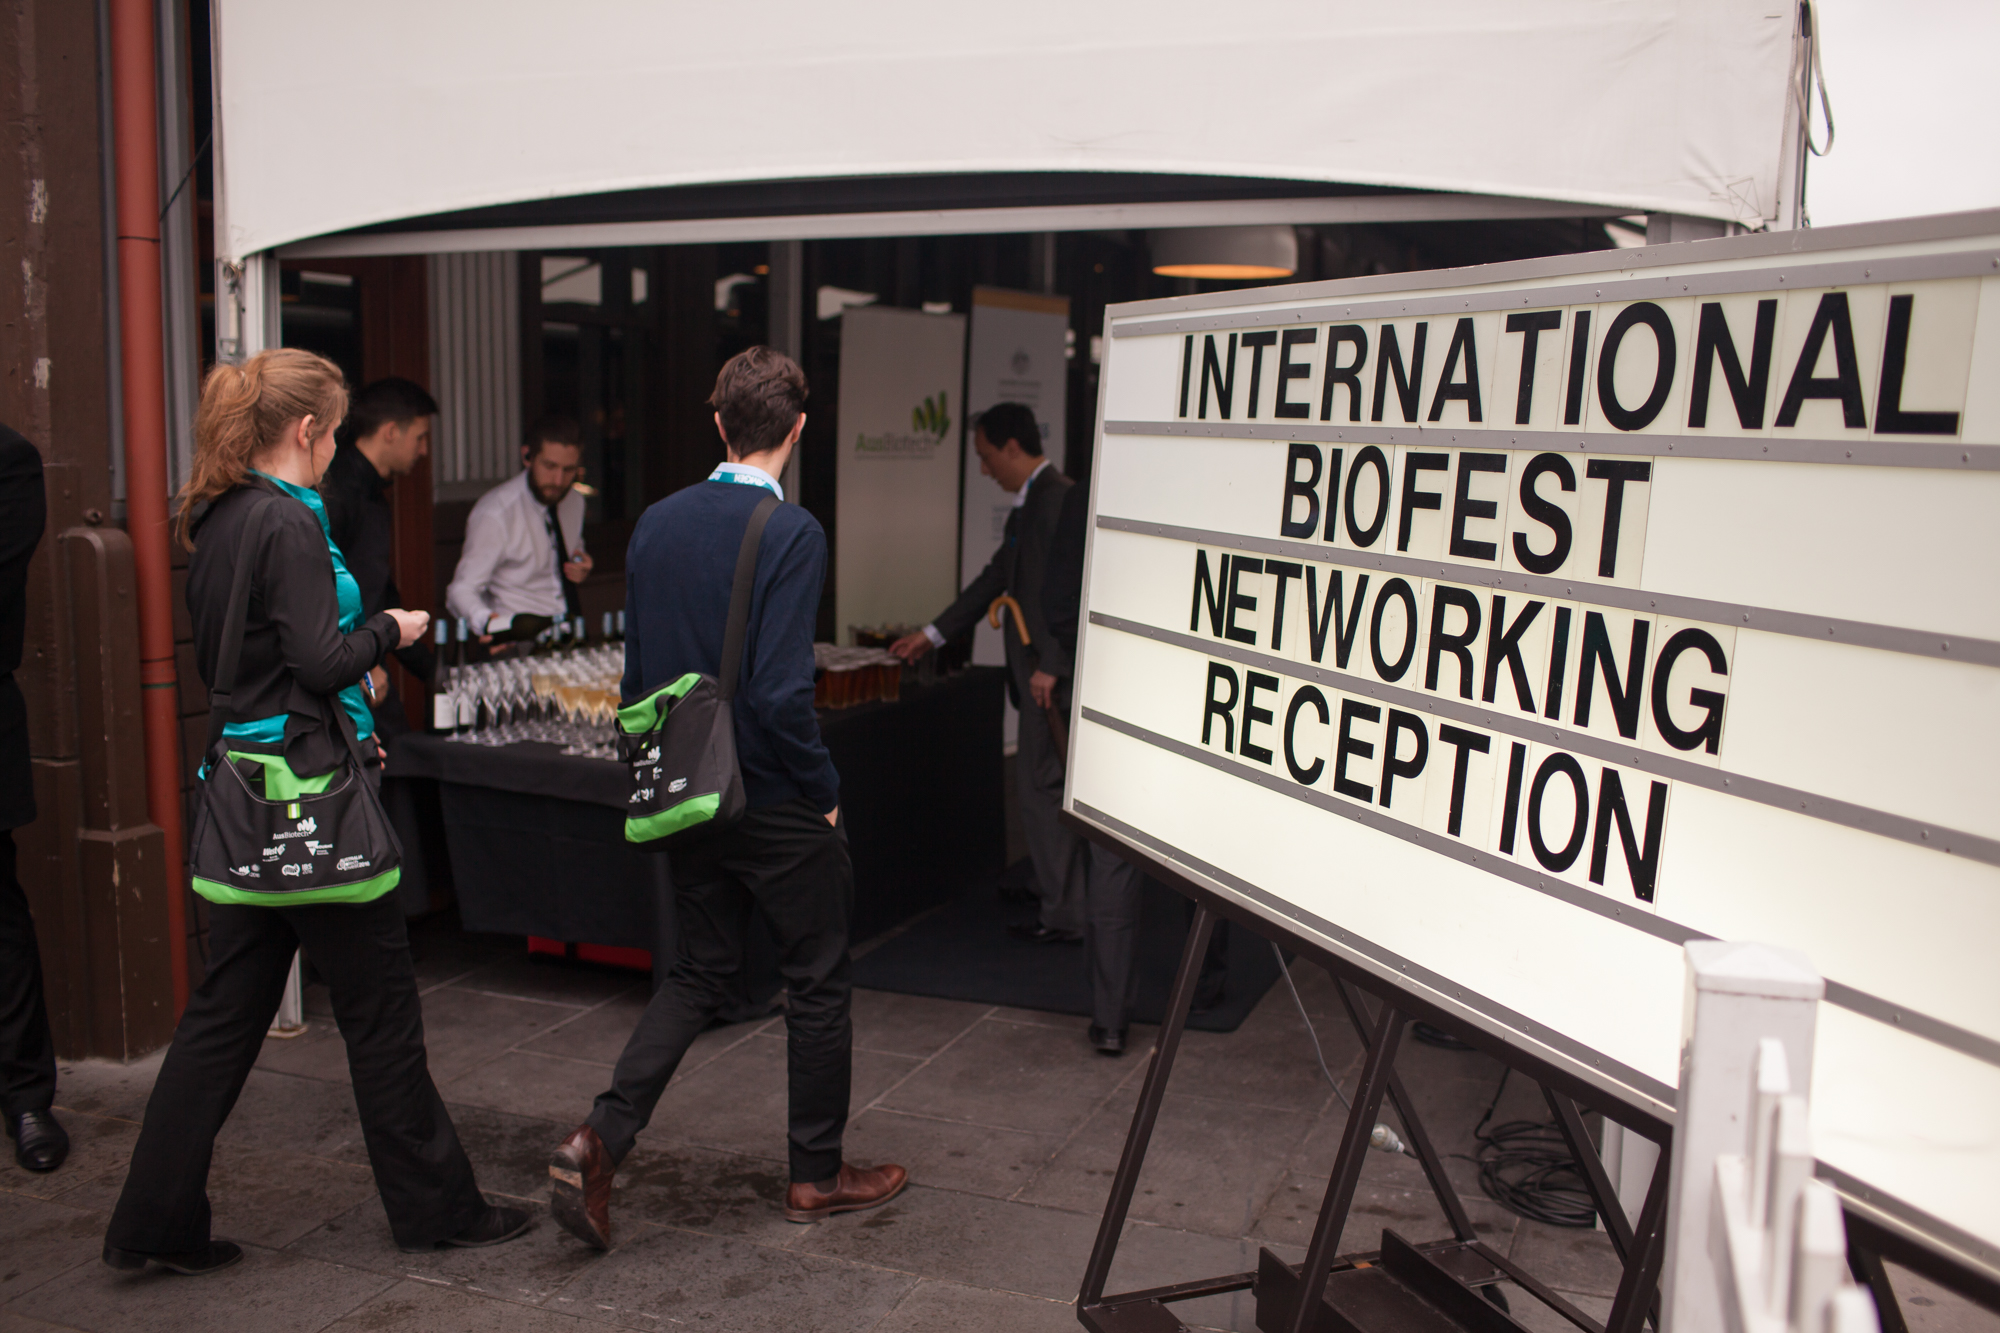 Closing reception - Member $15,000 - Non-member $20,000Close AusBiotech 2019 with a bang and have the final say at the Closing Reception on Friday 1 November. This well attended wrap up function ensures your brand leaves a lasting impression.